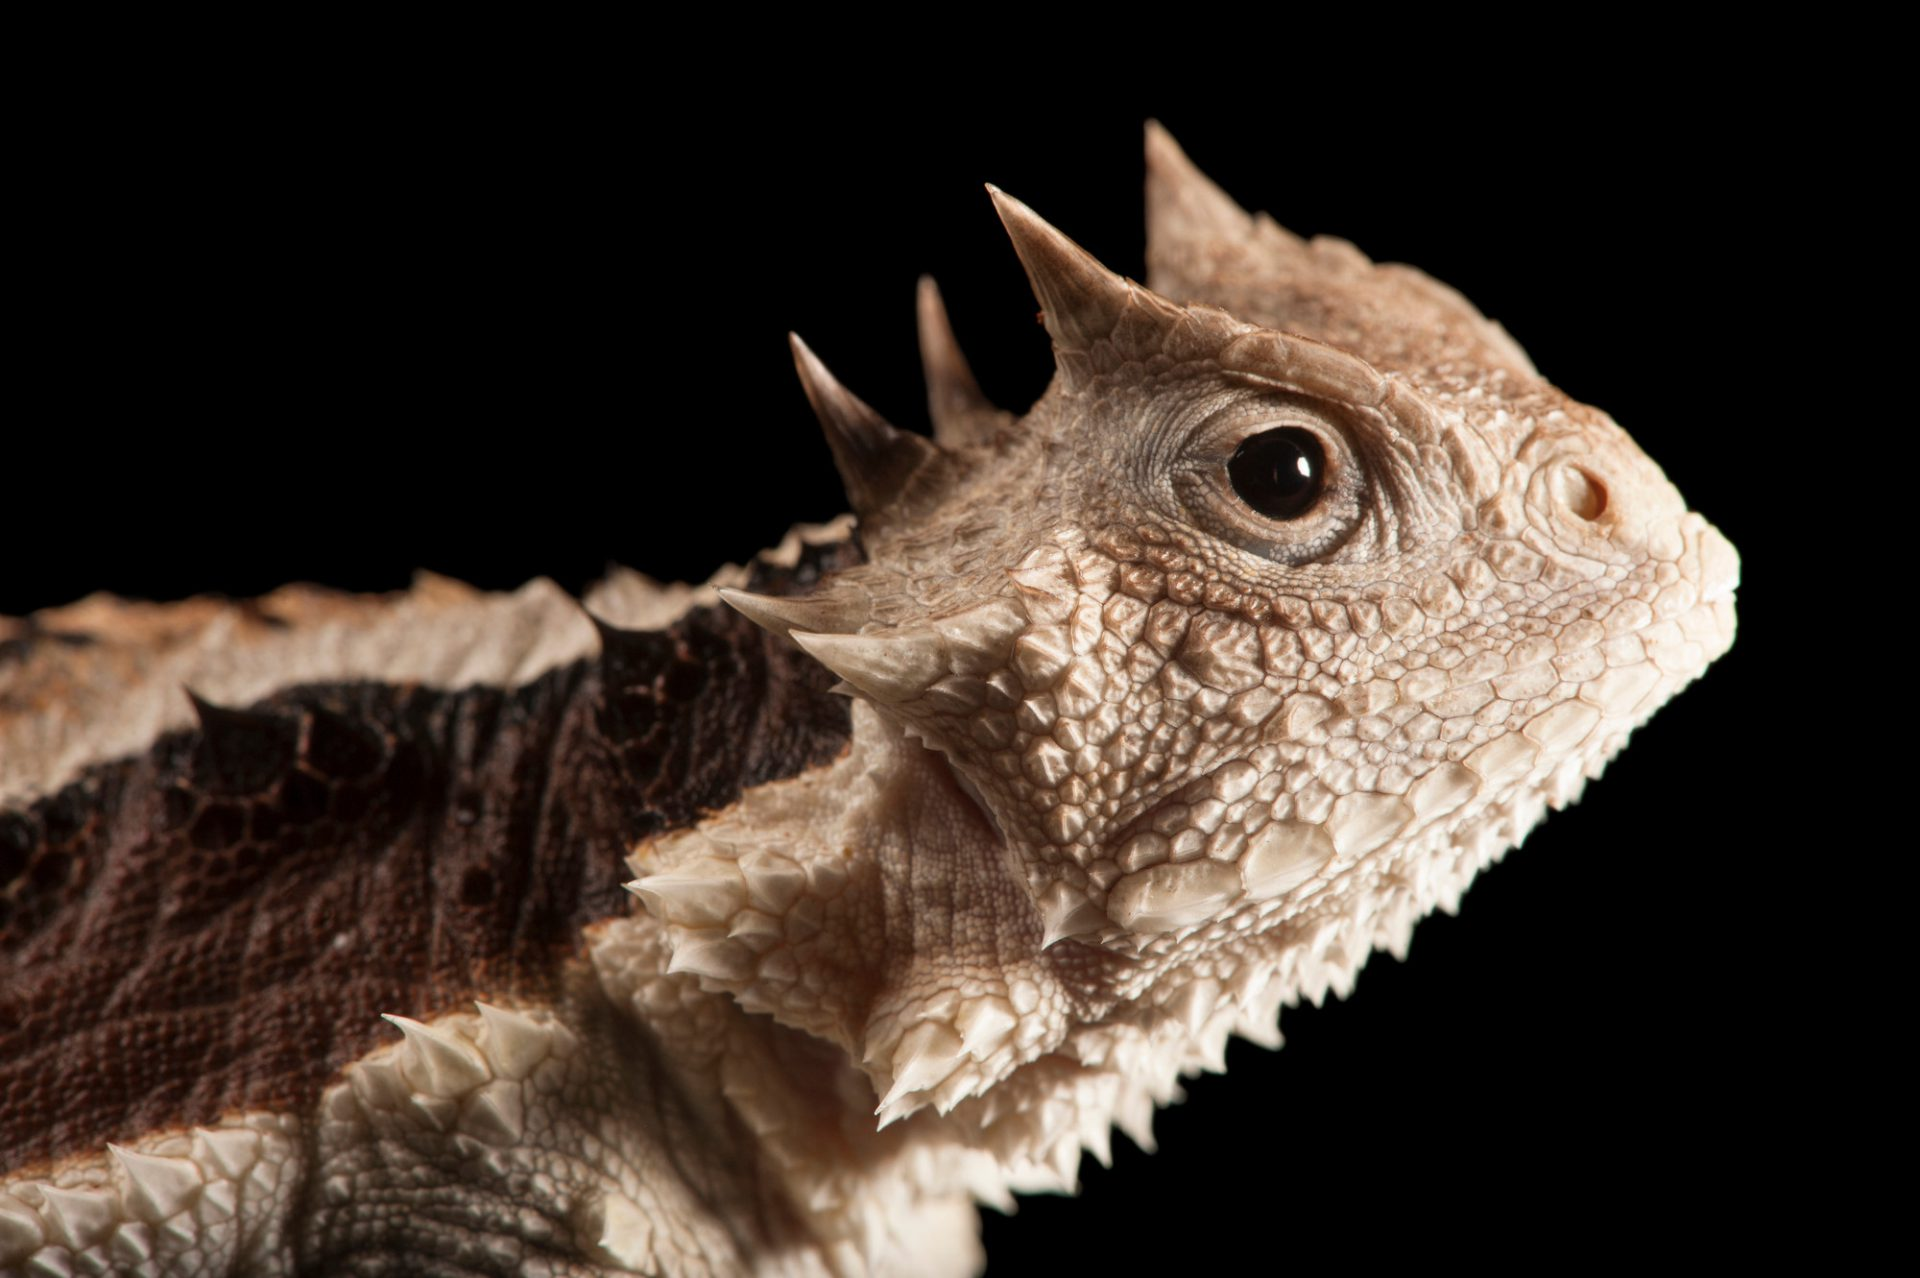 A giant horned lizard (Phrynosoma asio) at the LA Zoo.